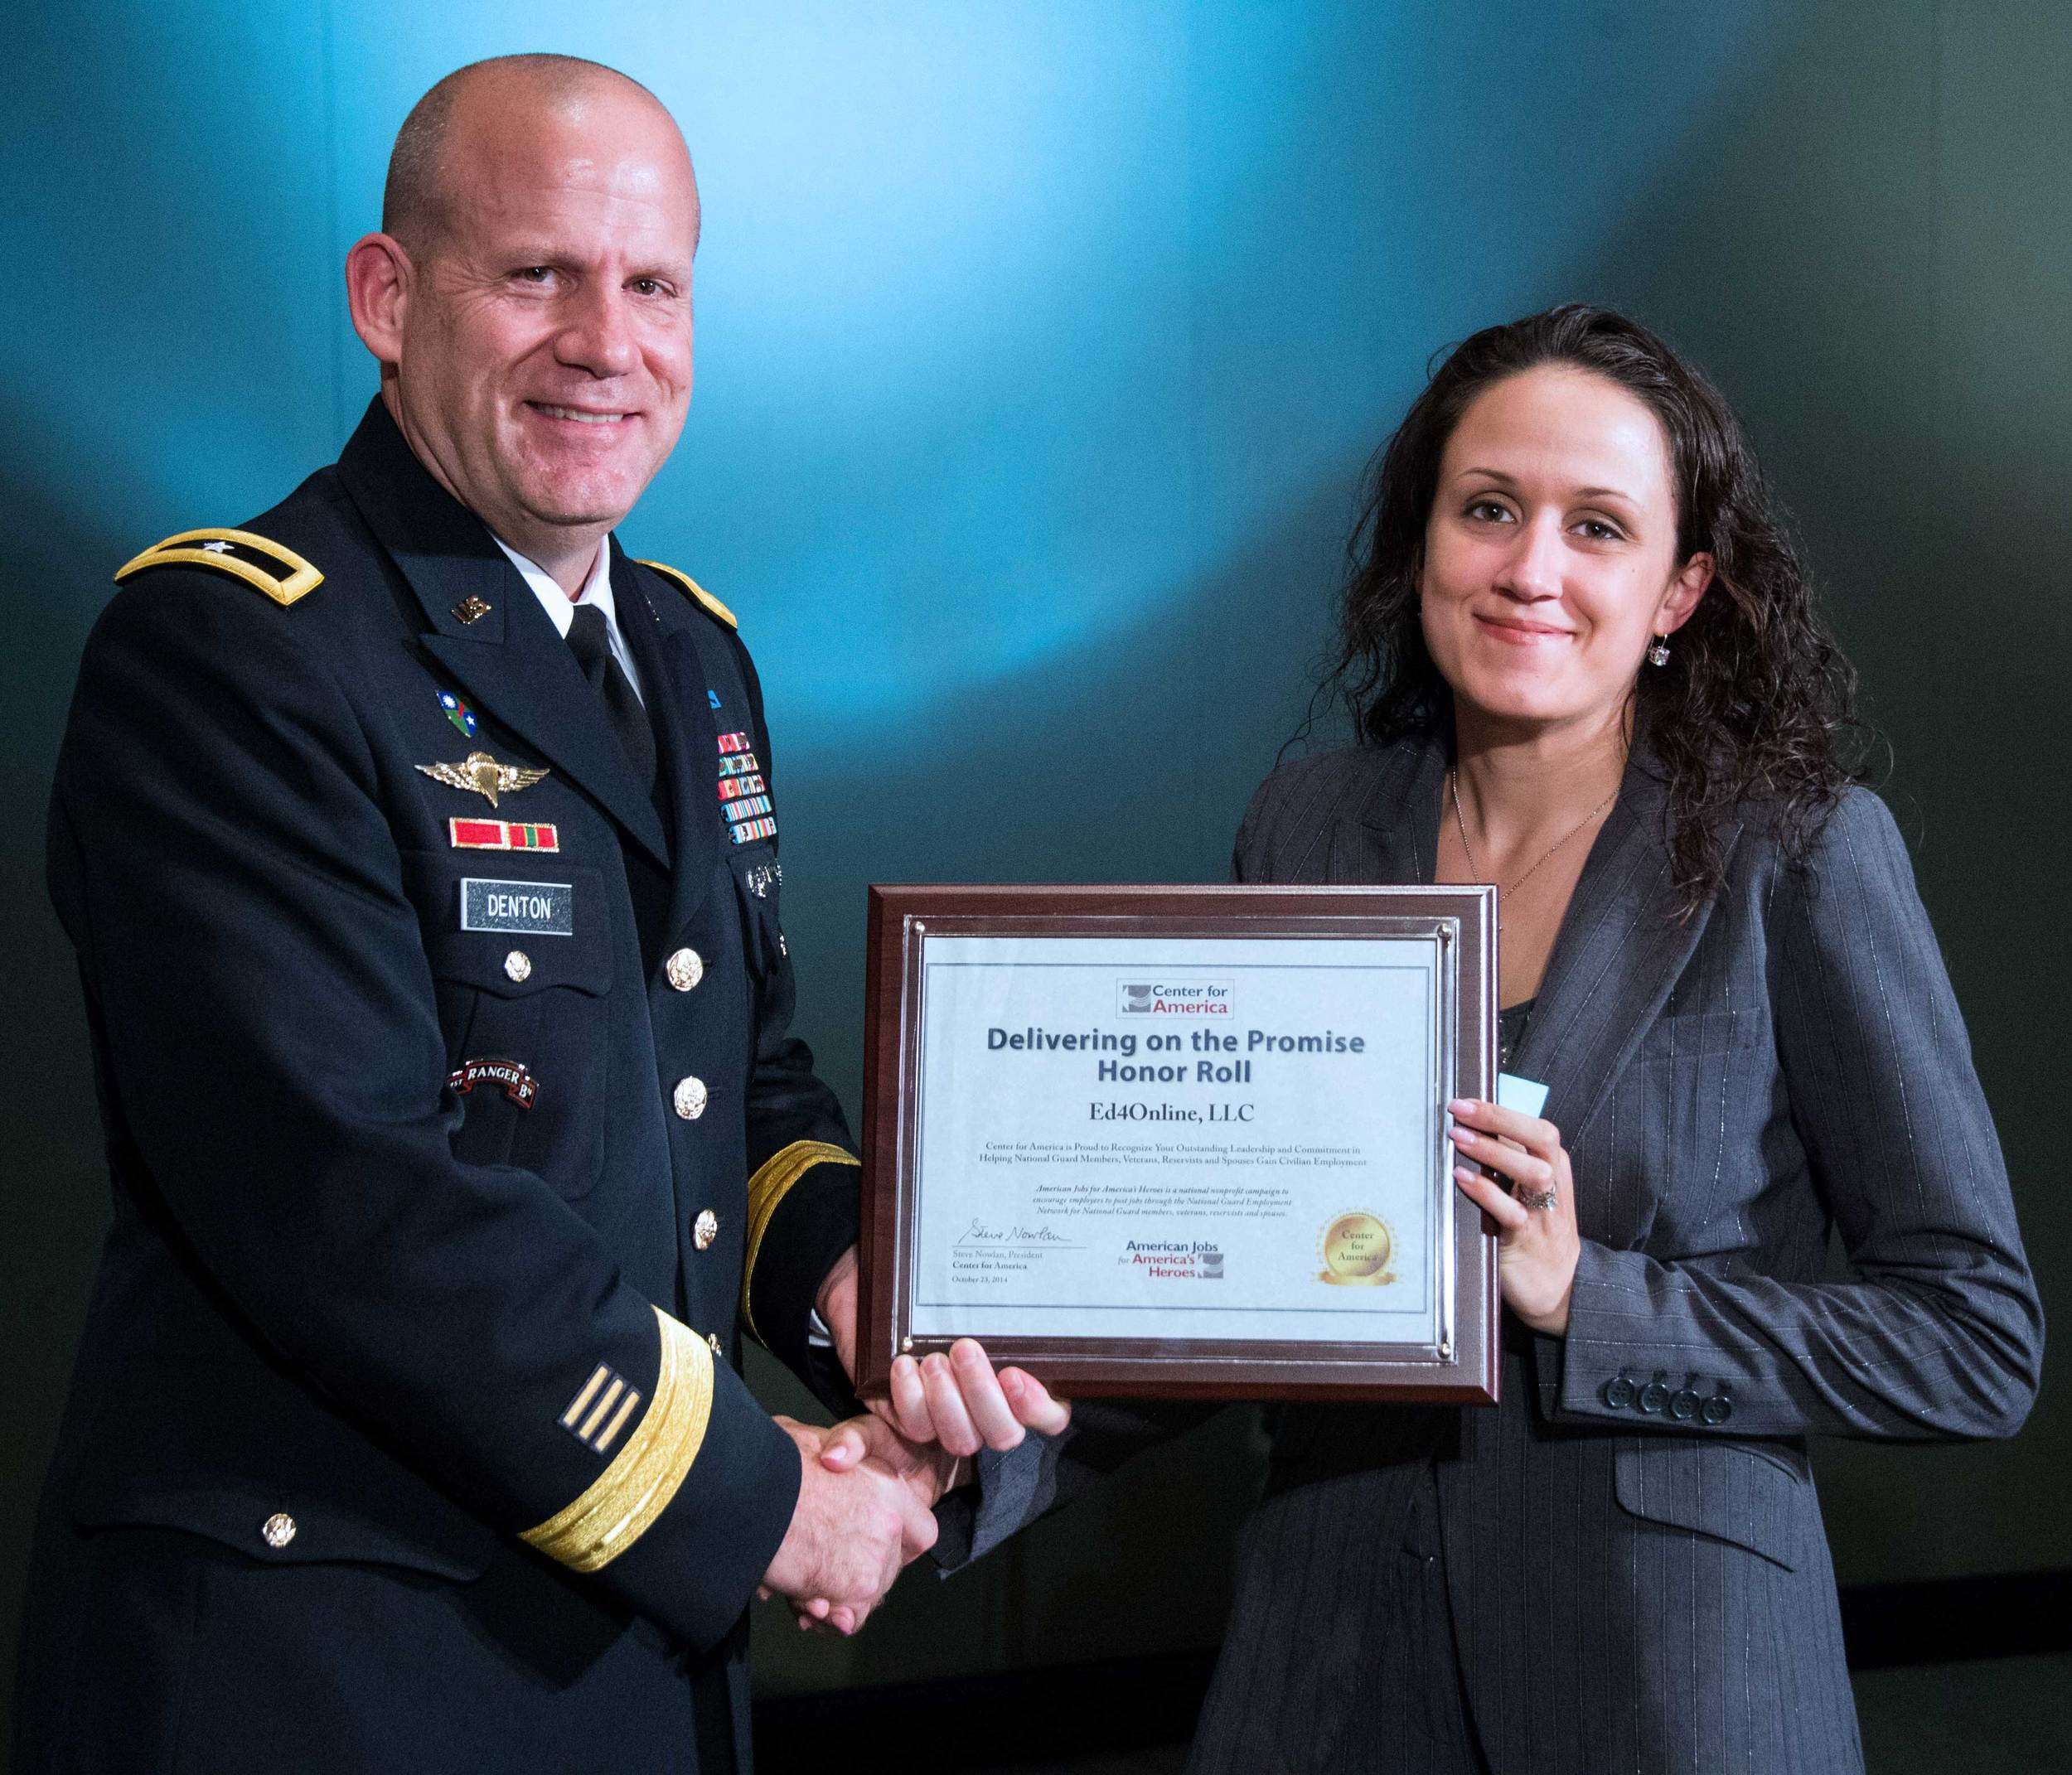 Brigadier General Ivan Denton presents the CFA Award to Angela Caban, Marketing Specialist, Ed4Online